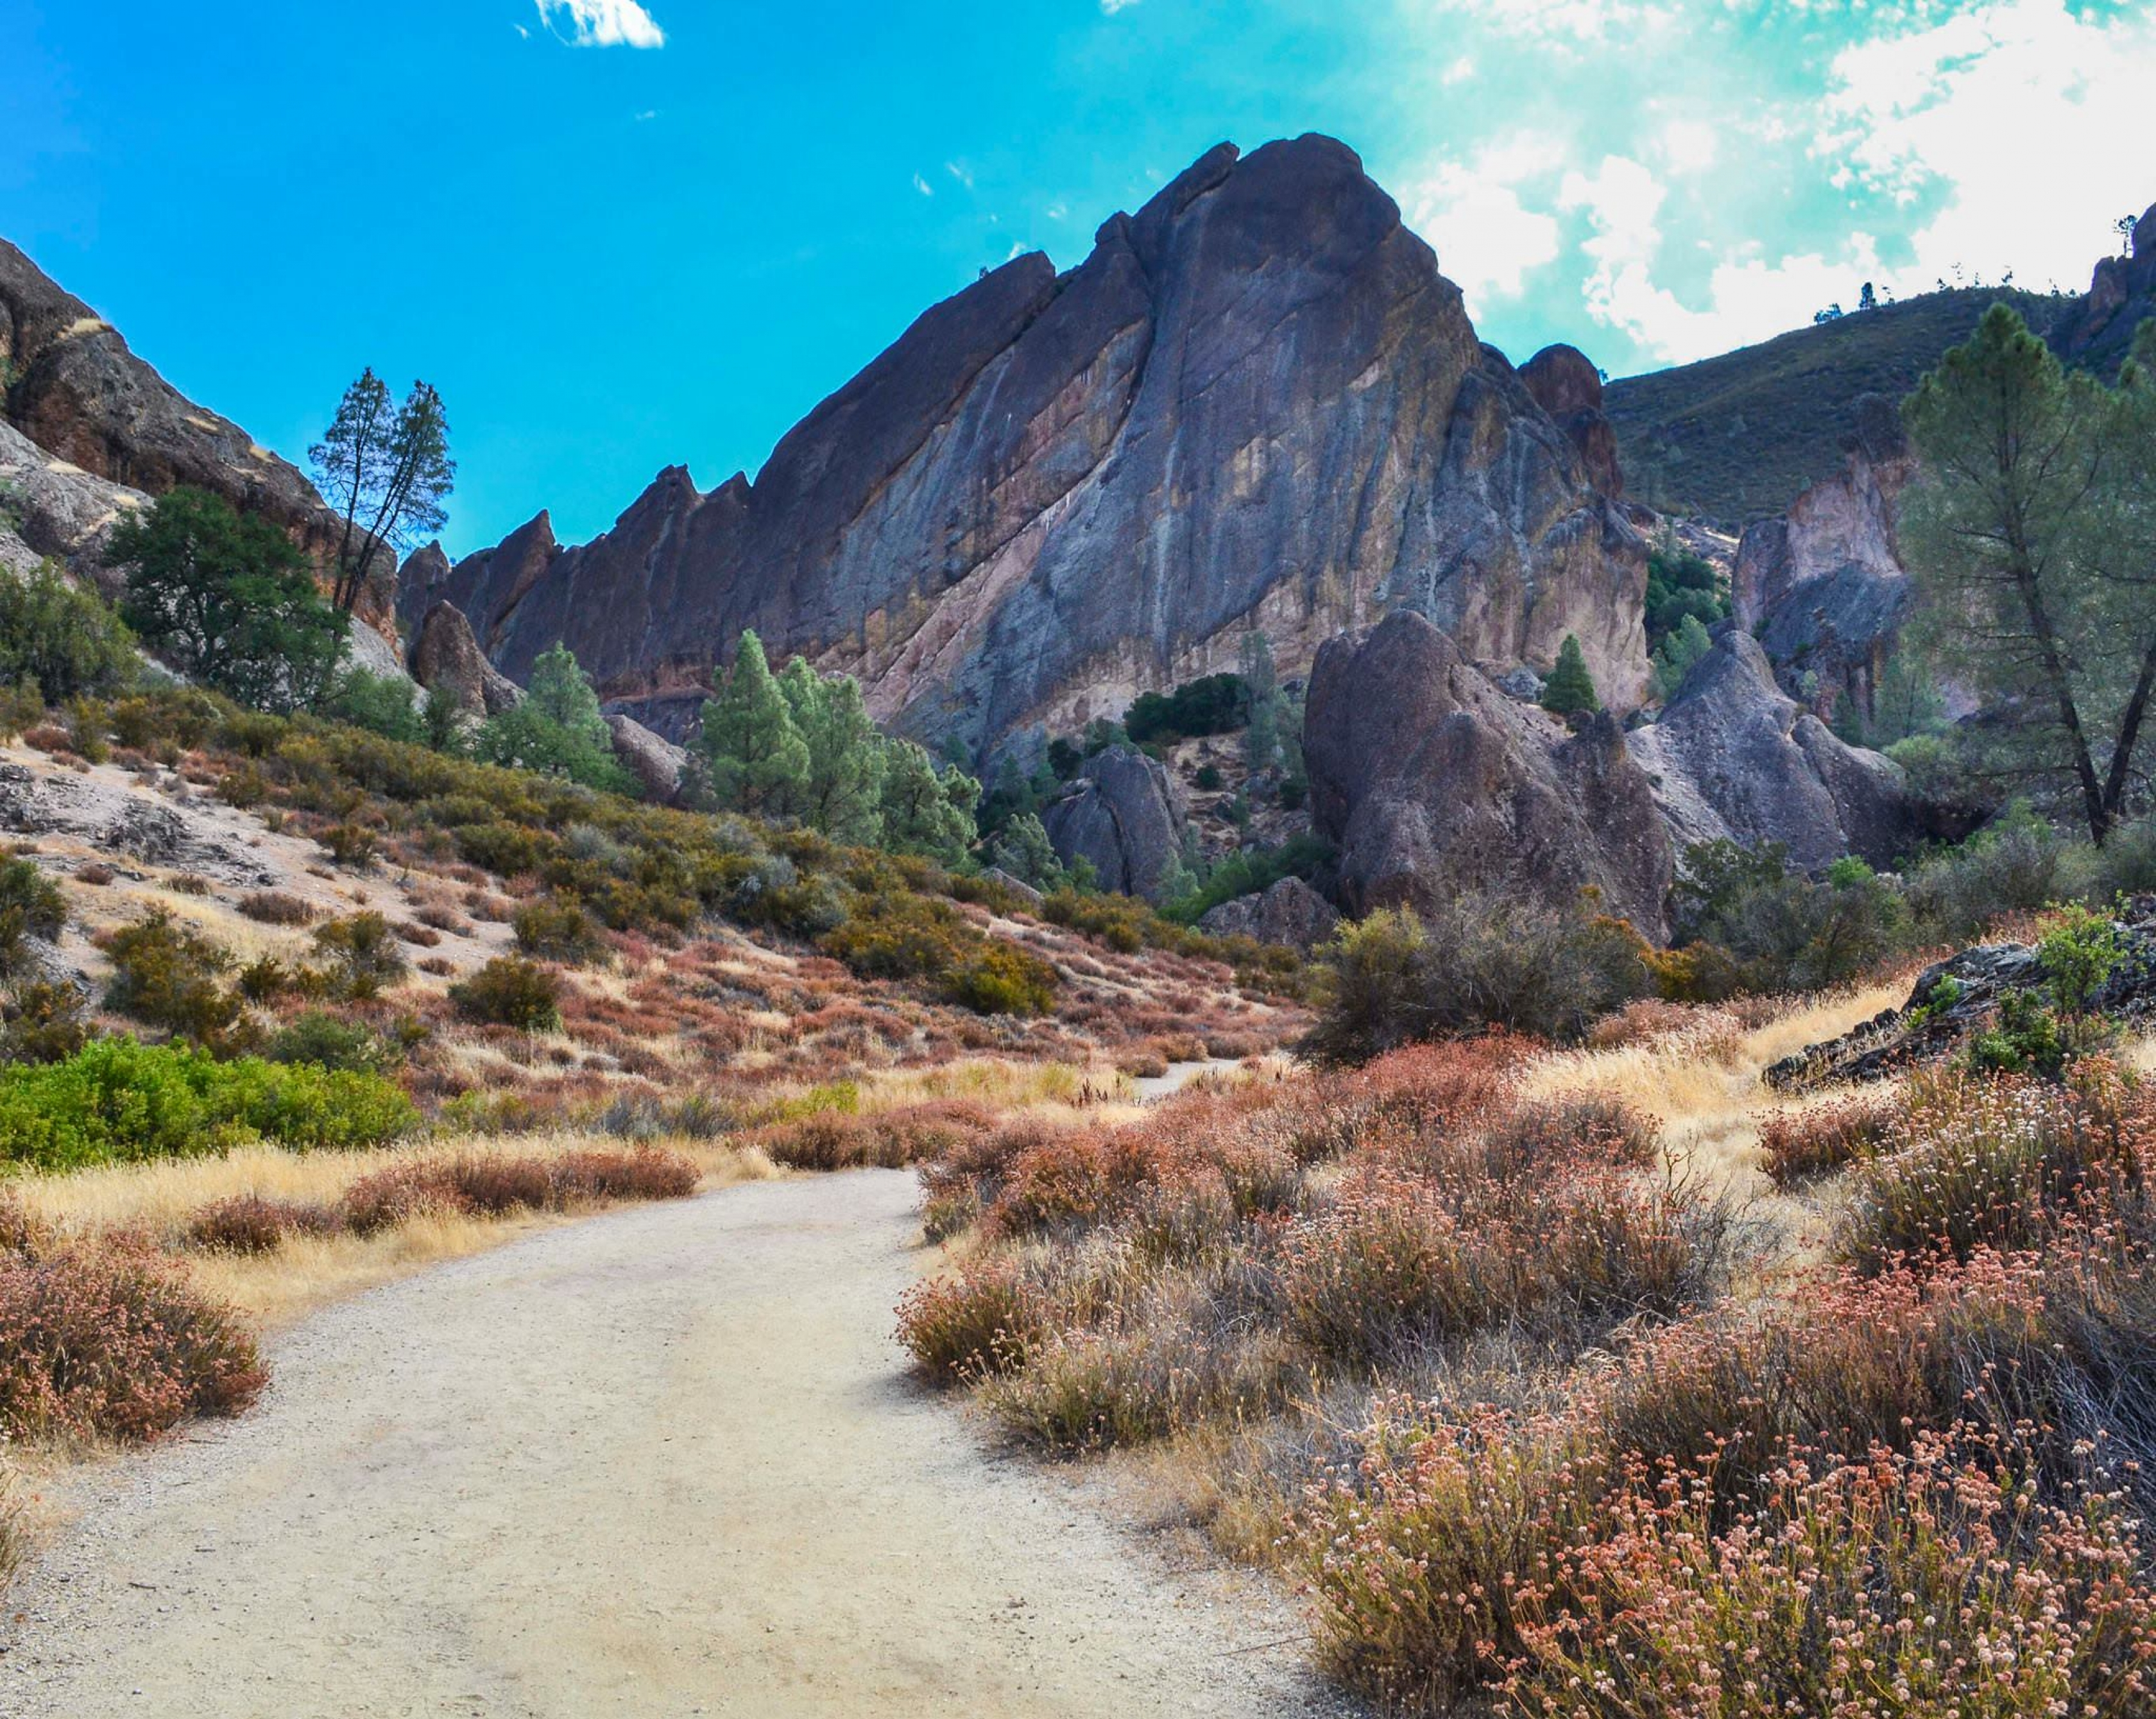 A landscape at Pinnacles National Park, formally a National Monument.